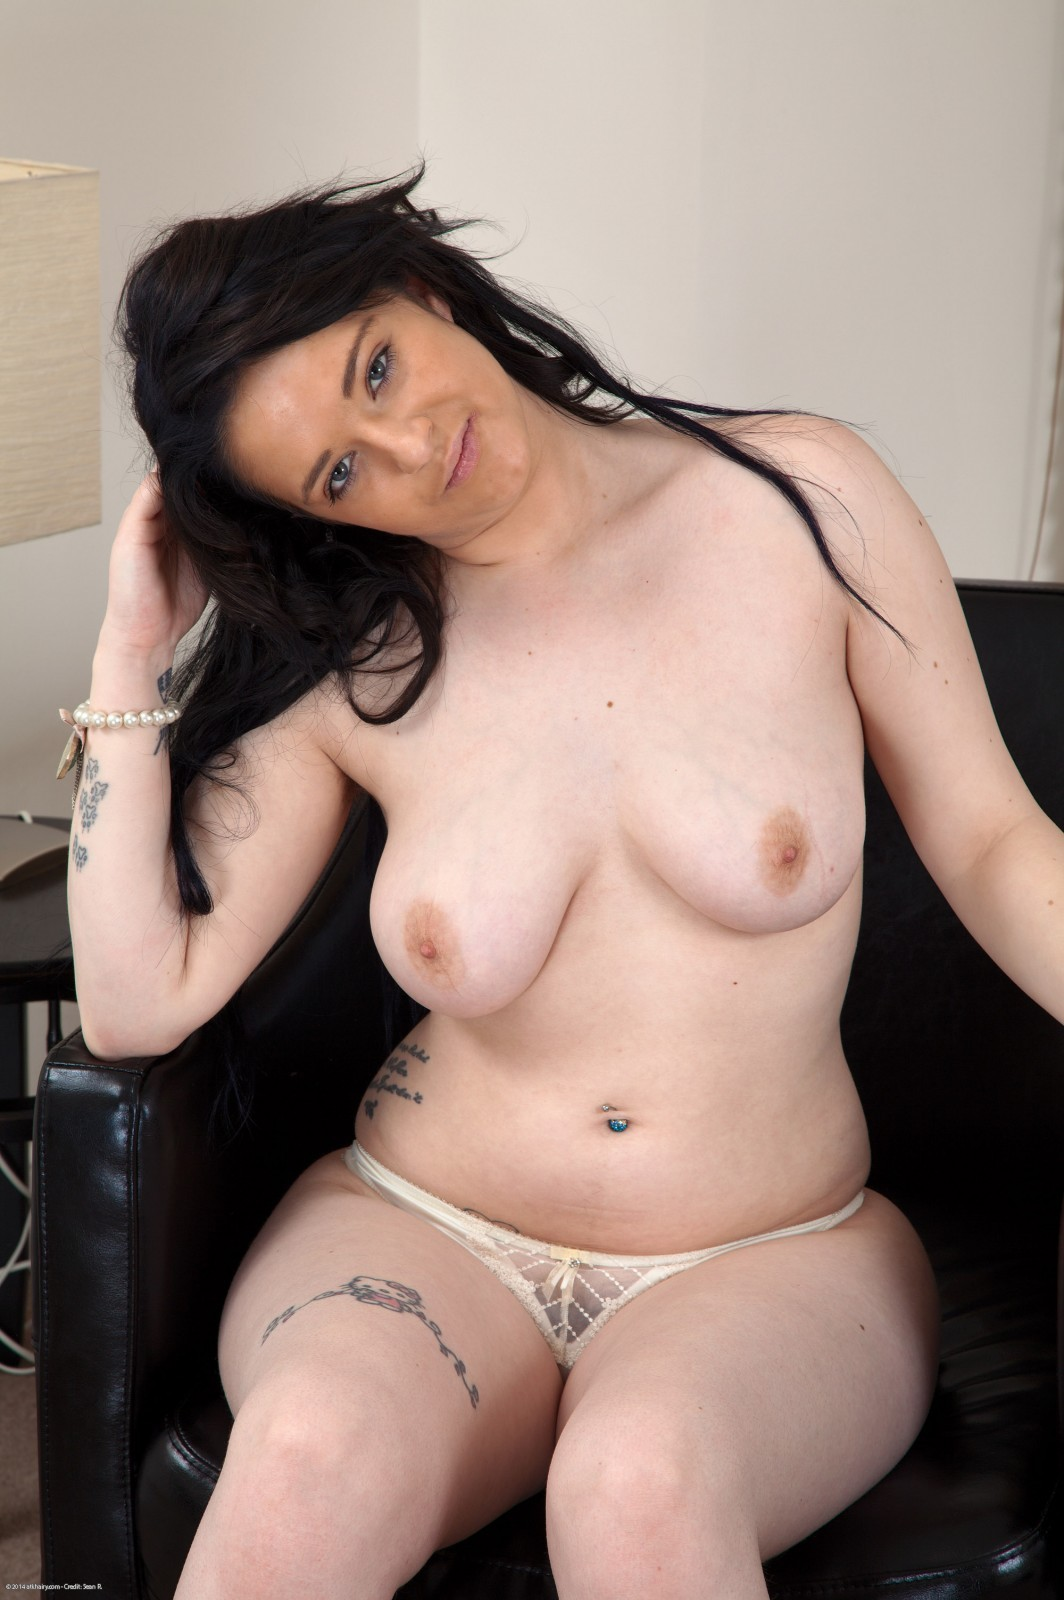 amateur curvy Hairy natural